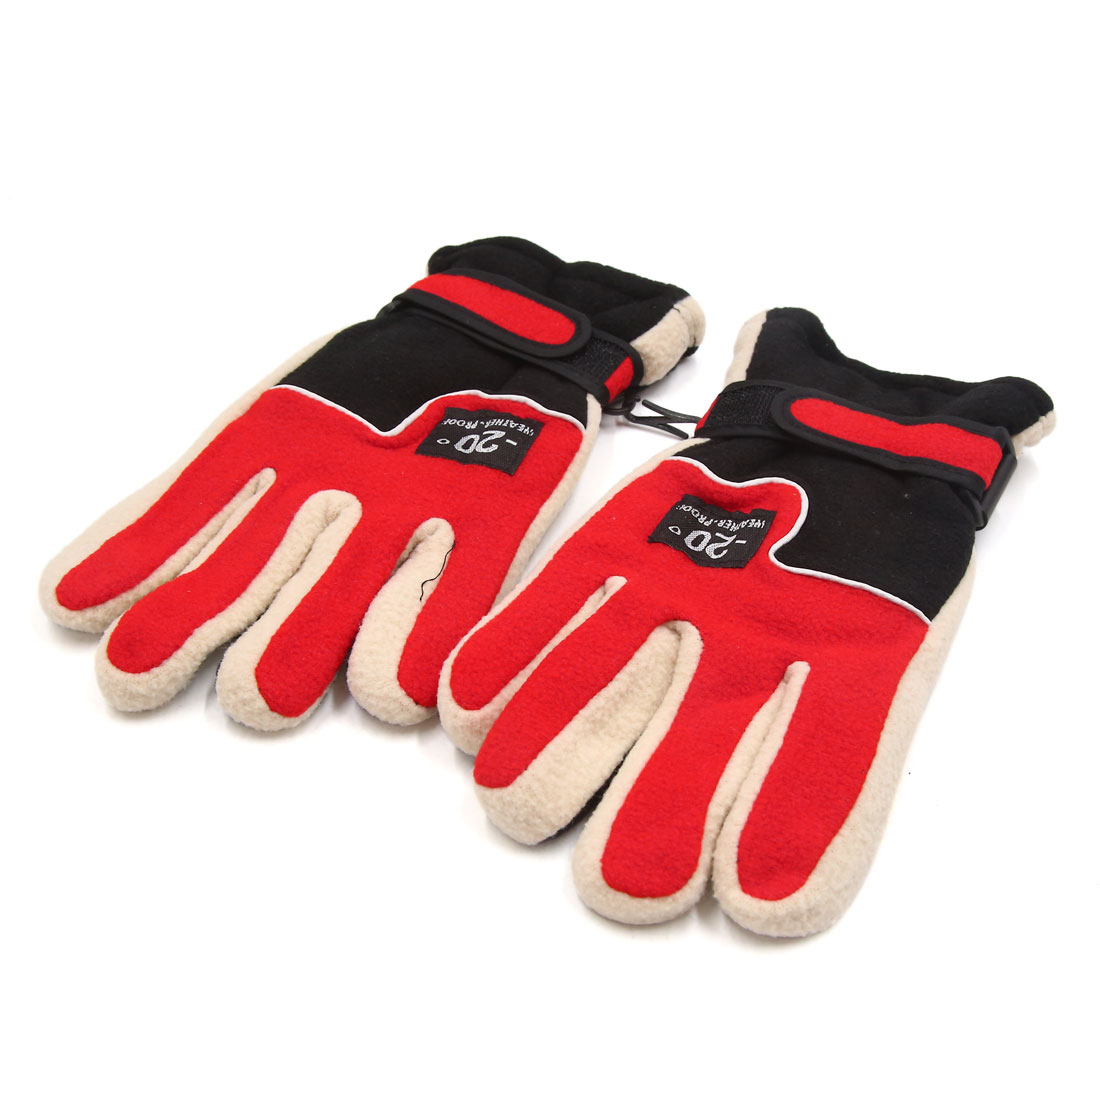 2PCS Red Fleece Warm Protective Full Finger Motorcycle Cycling Outdoor Gloves